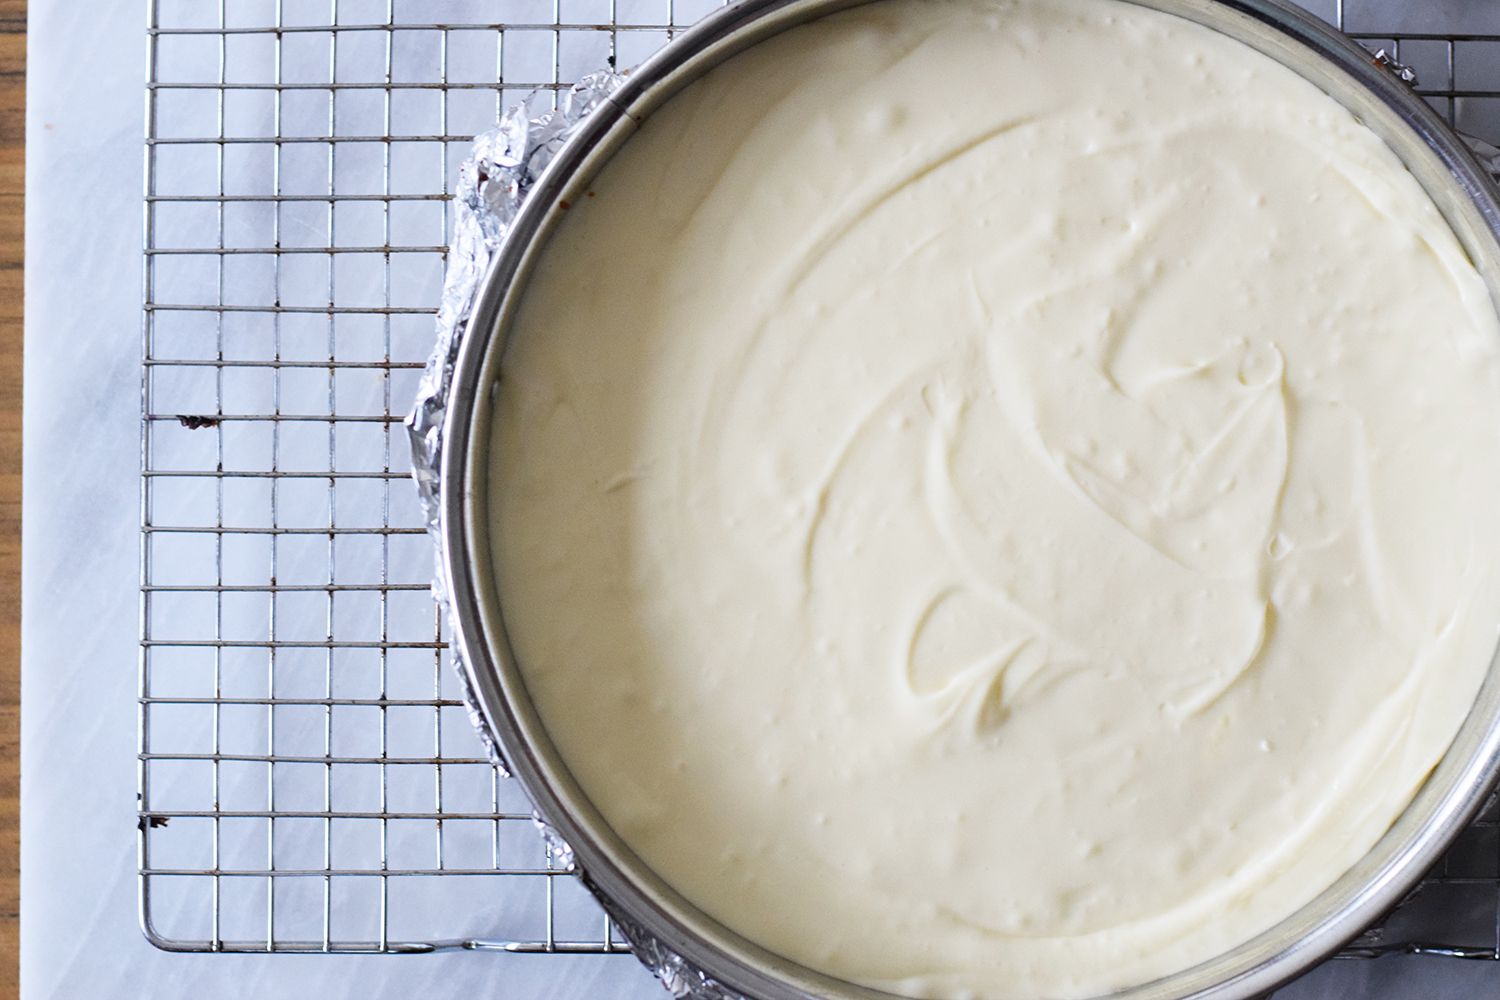 Cheesecake mix in pan